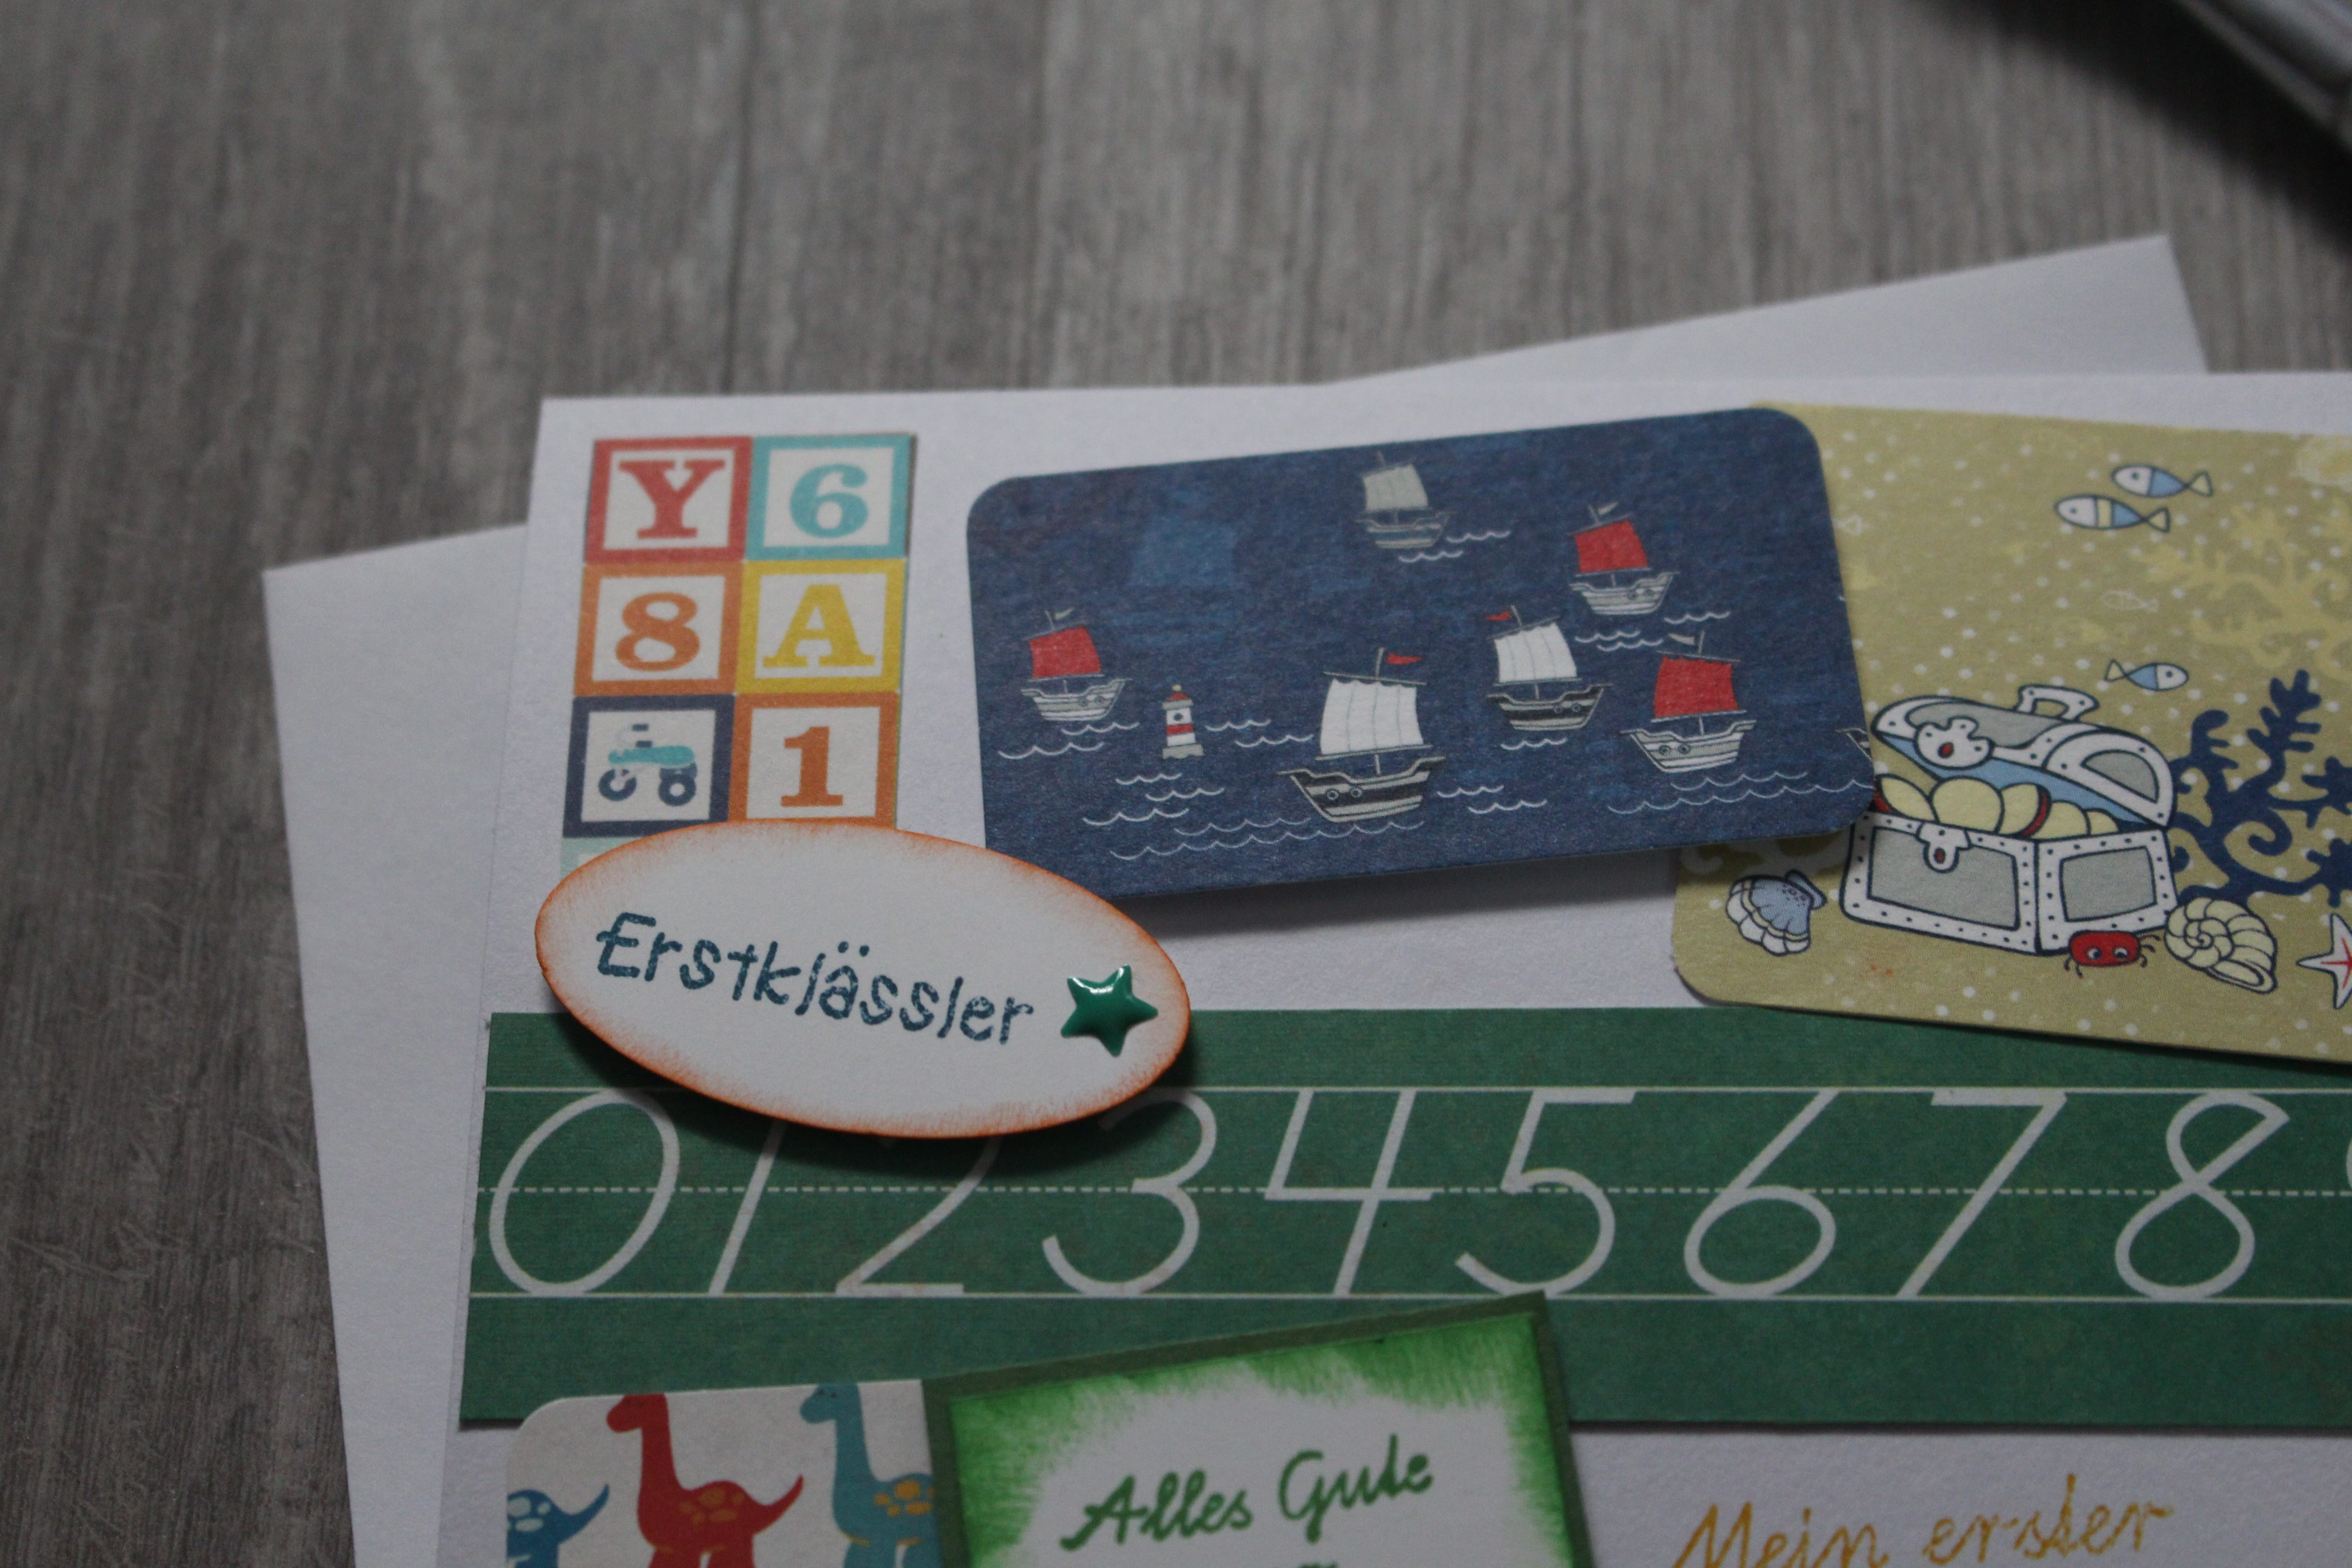 Karte Zur Einschulung.Karte Zur Einschulung Luya Arts And Cards